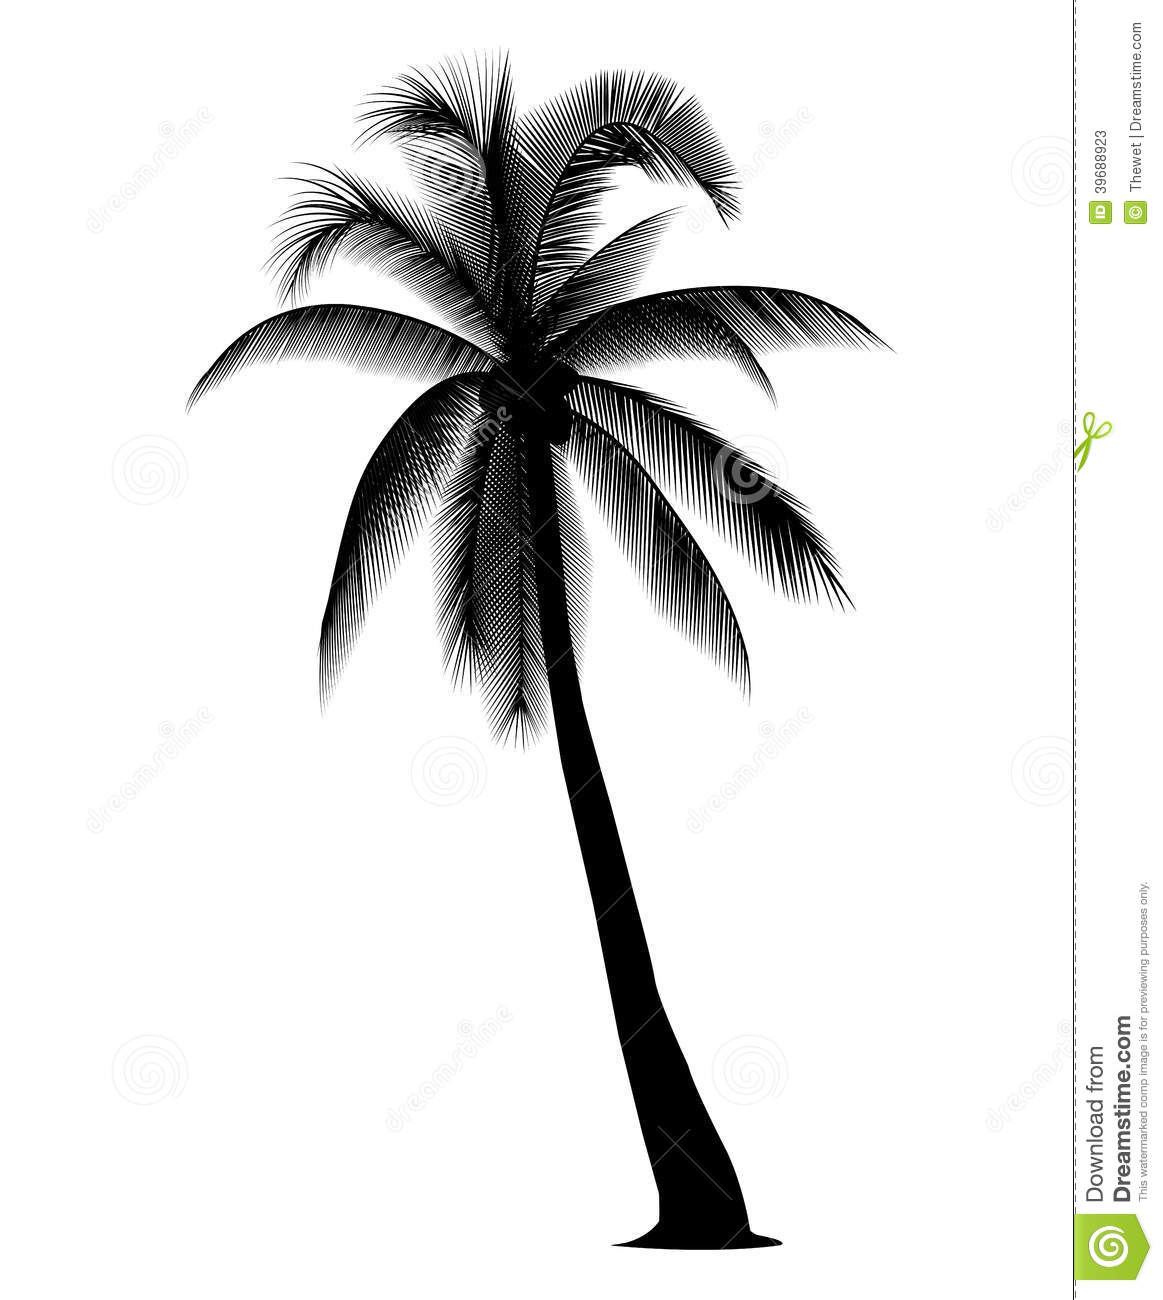 Coconut Tree Silhouette .-Coconut Tree Silhouette .-10